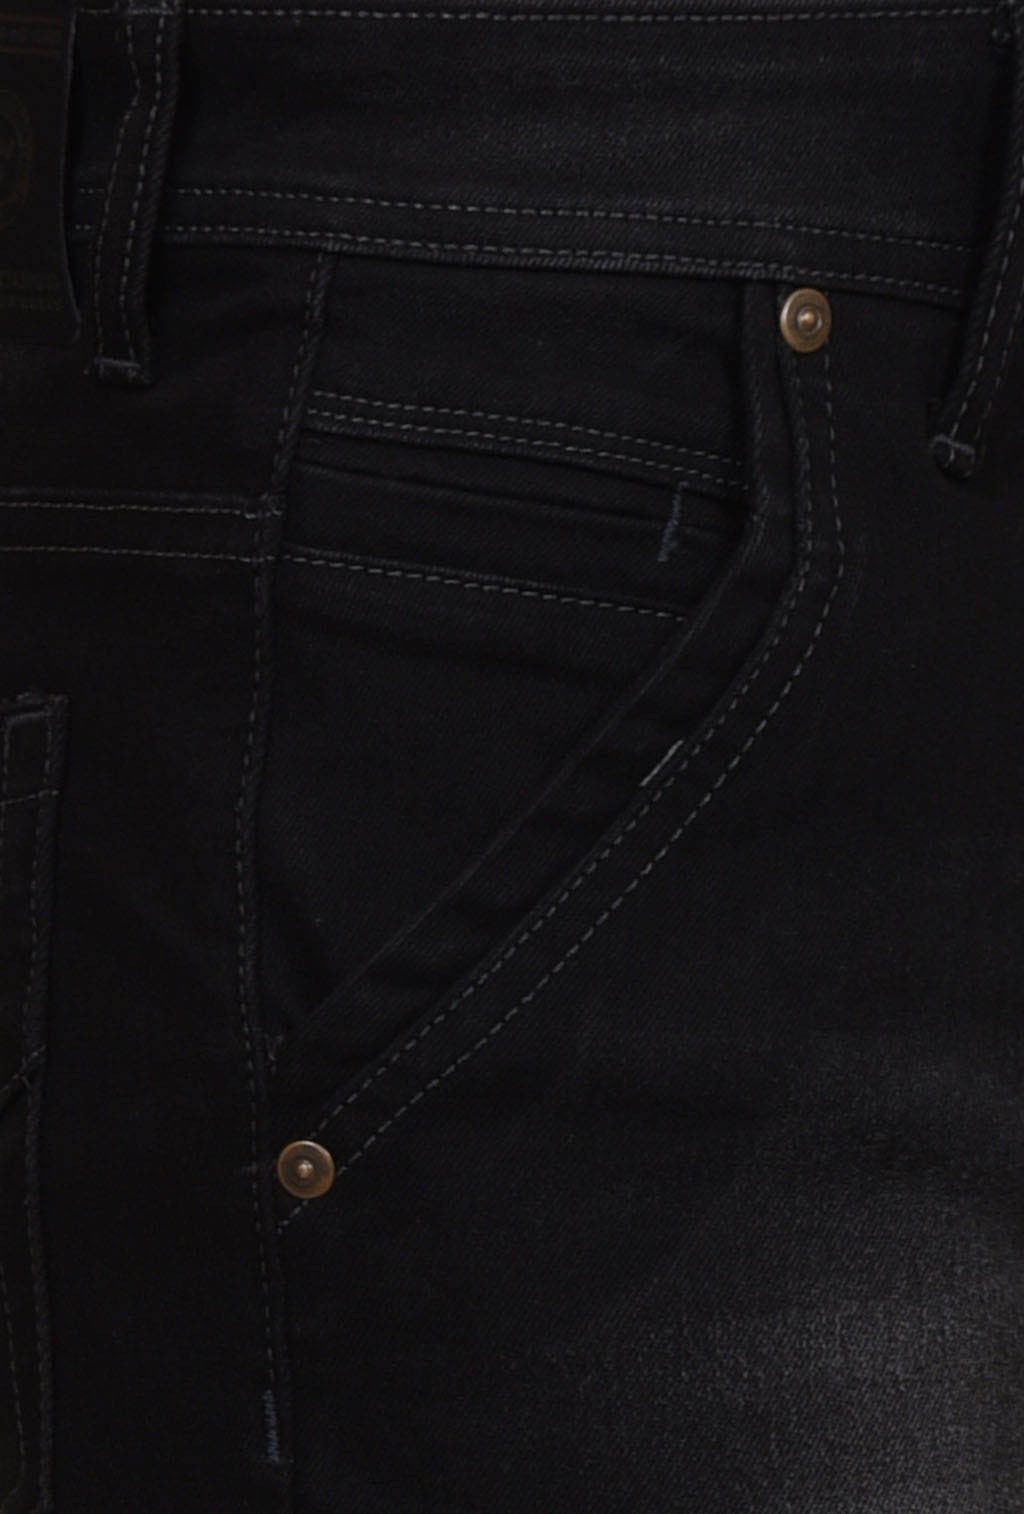 Black comfort fit denims